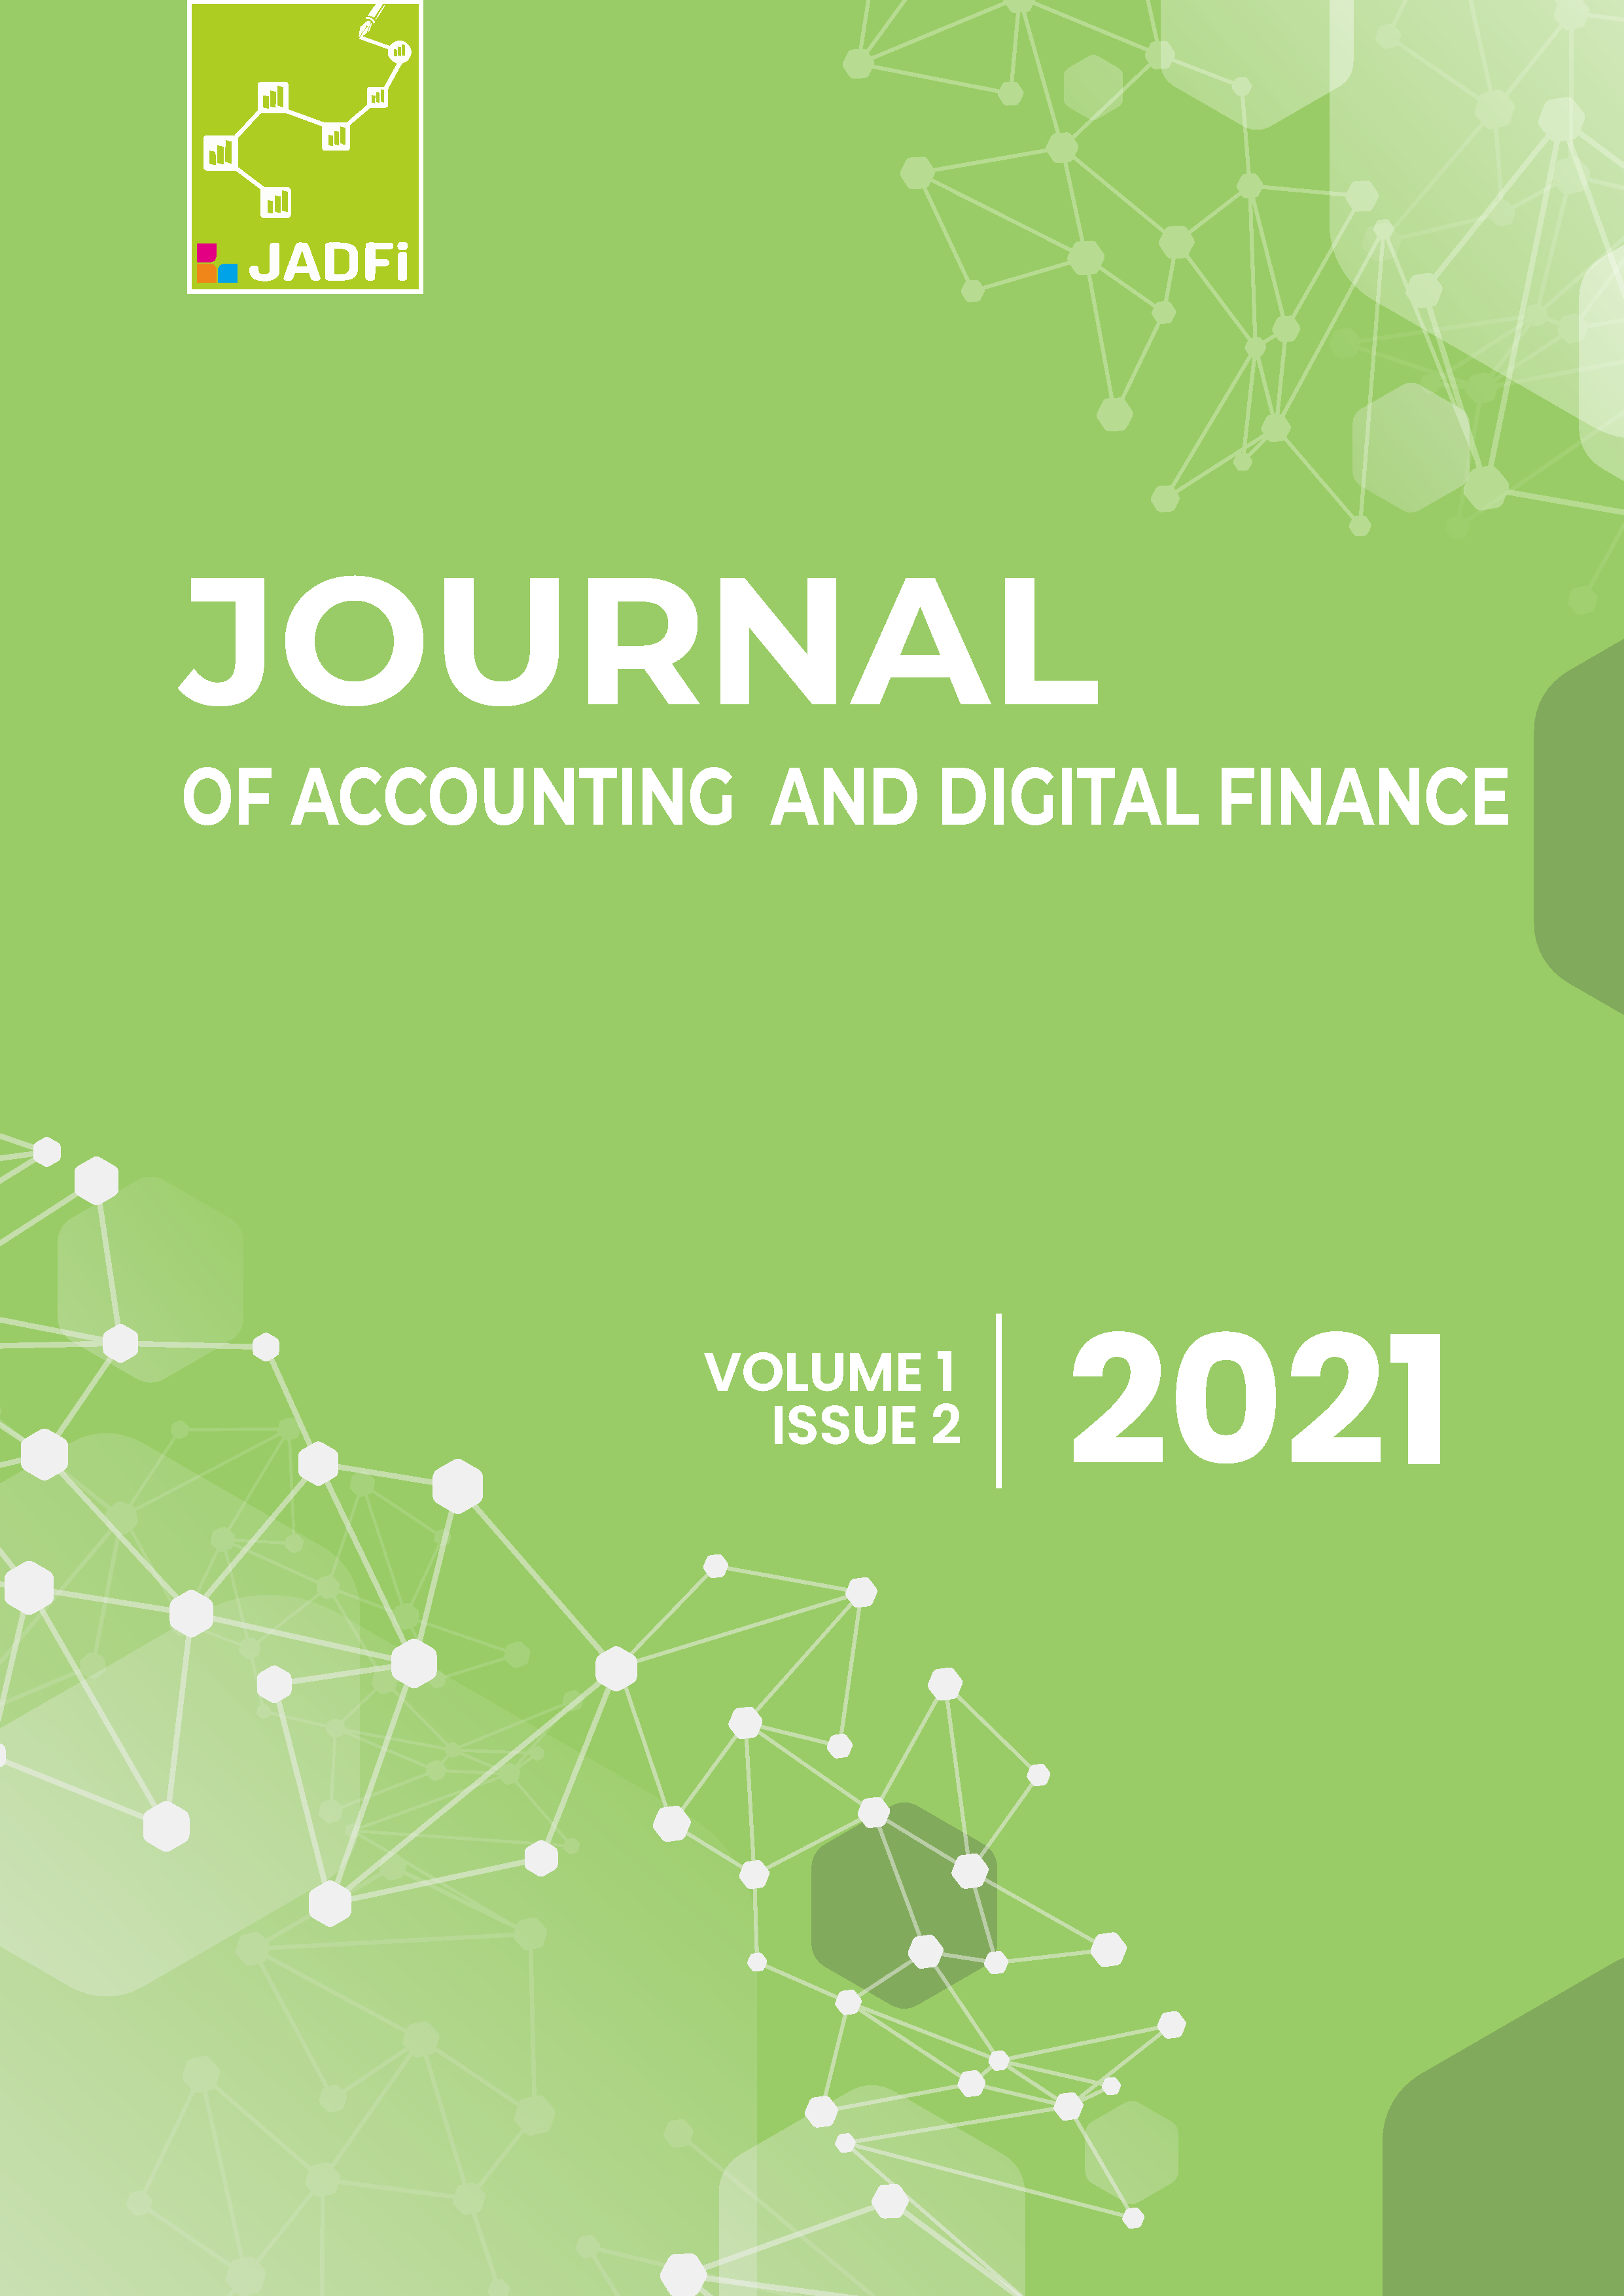 View Vol. 1 No. 2 (2021): Journal of Accounting and Digital Finance